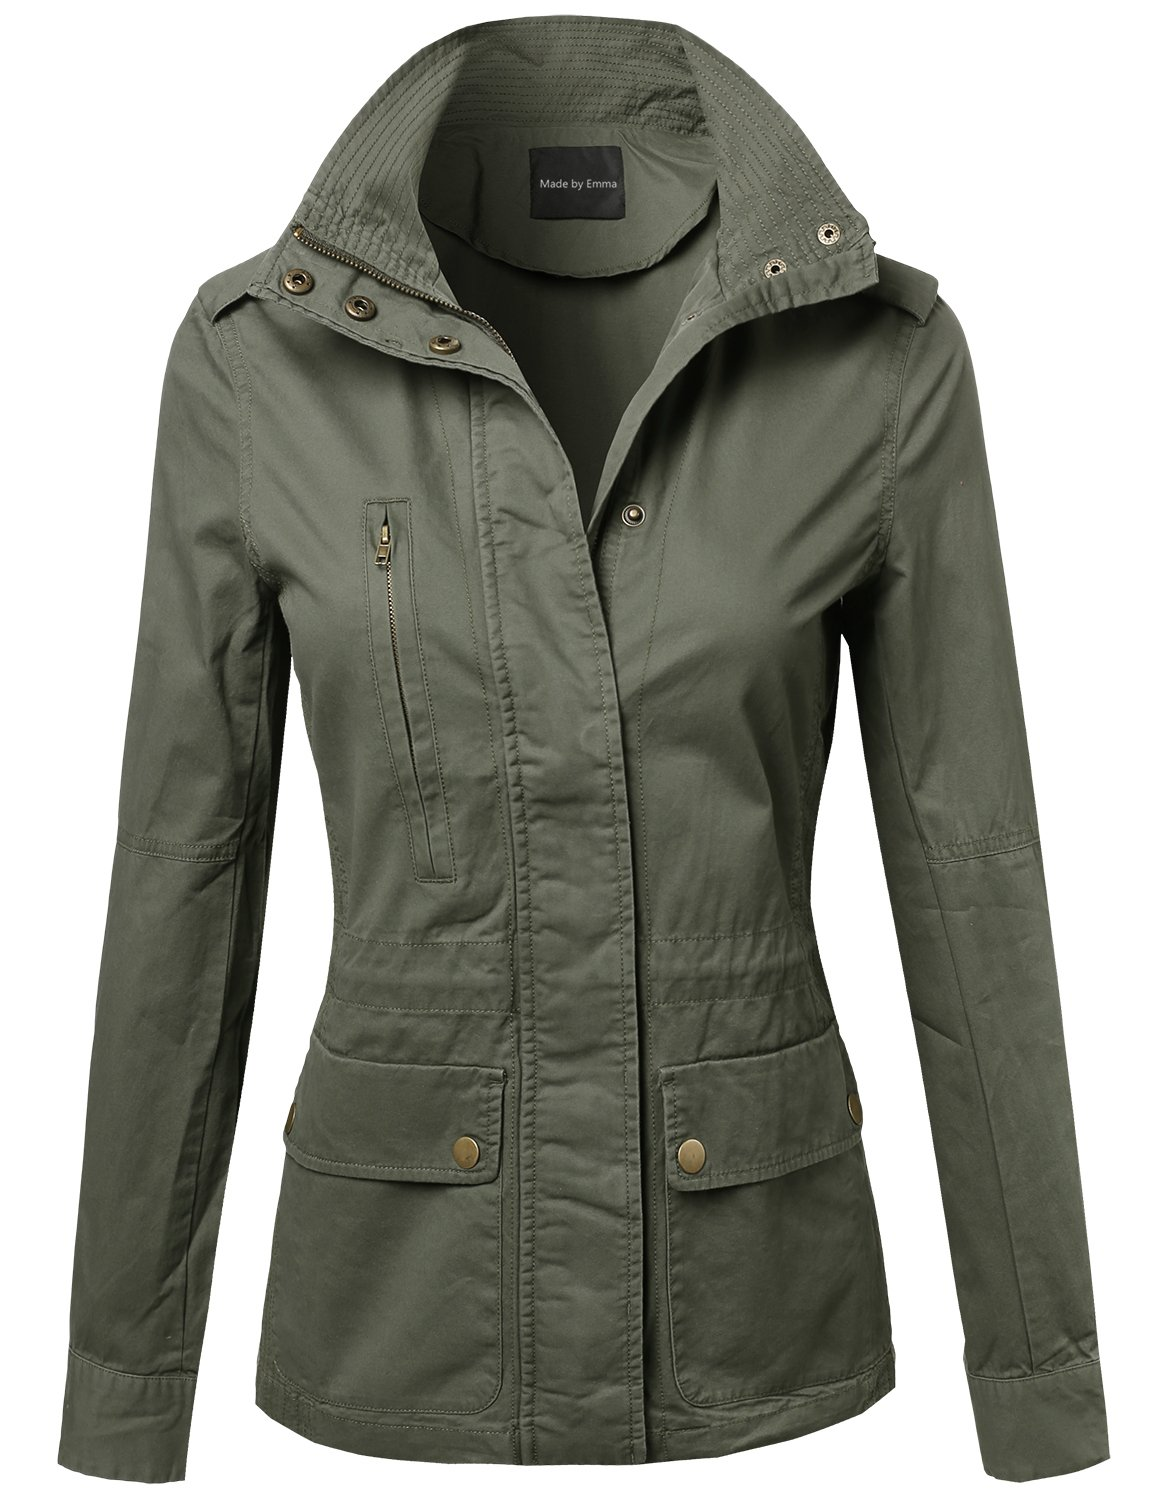 Made by Emma Military Style Zipper Snap Button Closure Jacket Olive 2XL